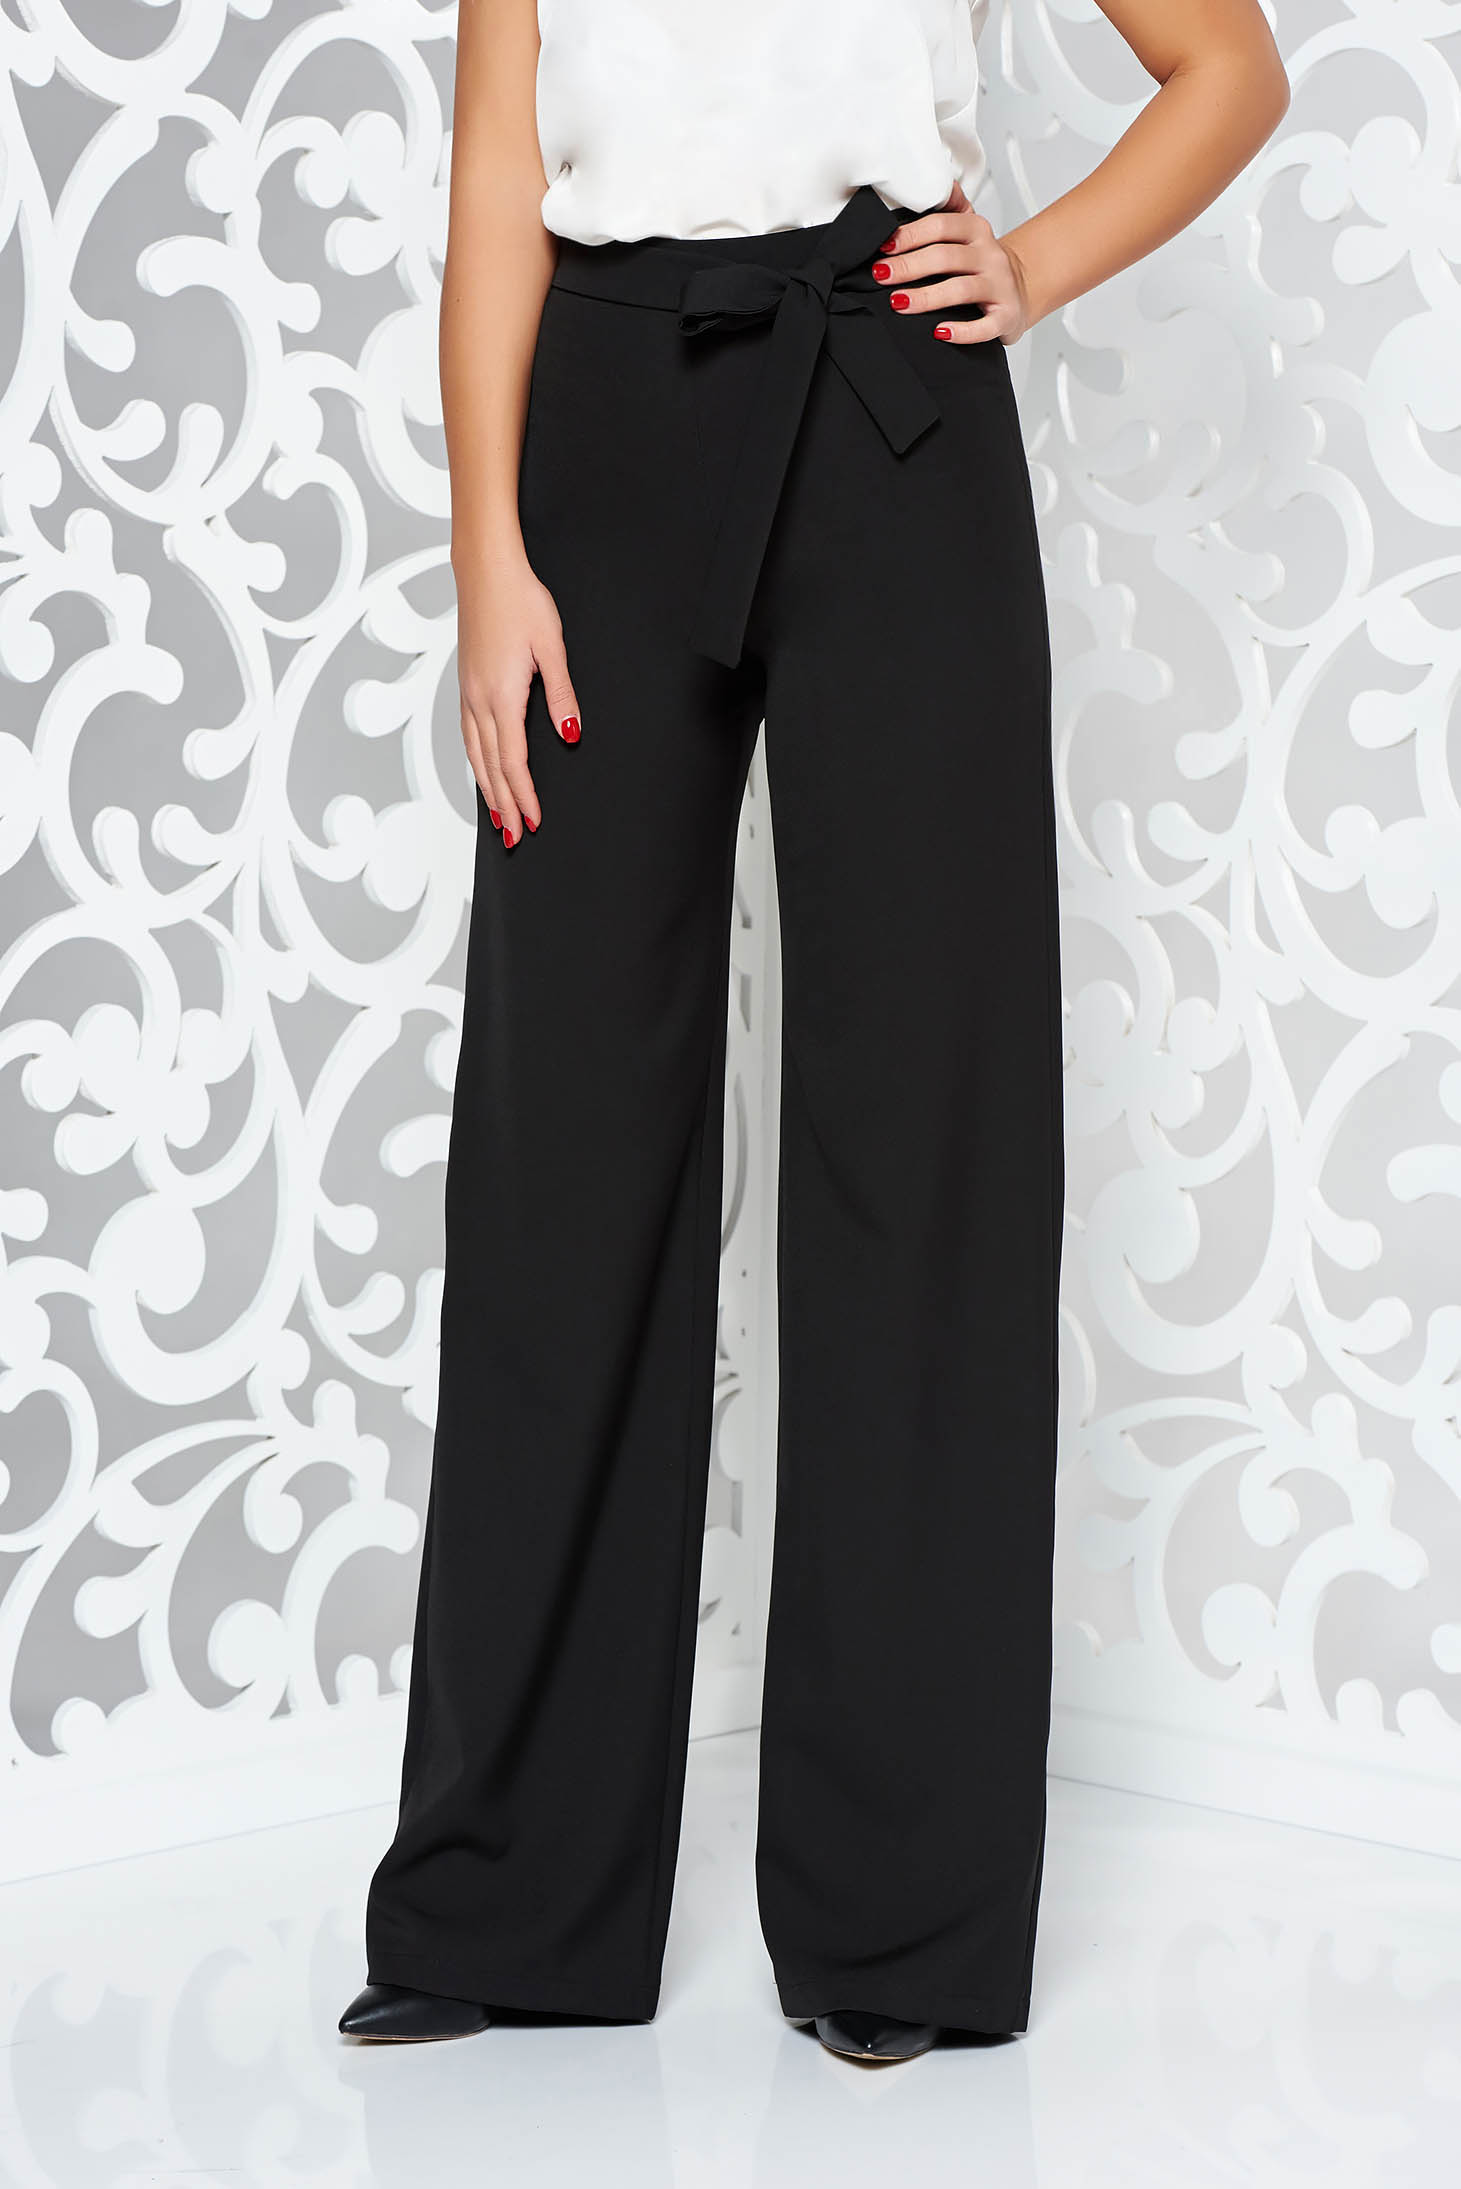 StarShinerS timeless romance black office elegant trousers accessorized with tied waistband